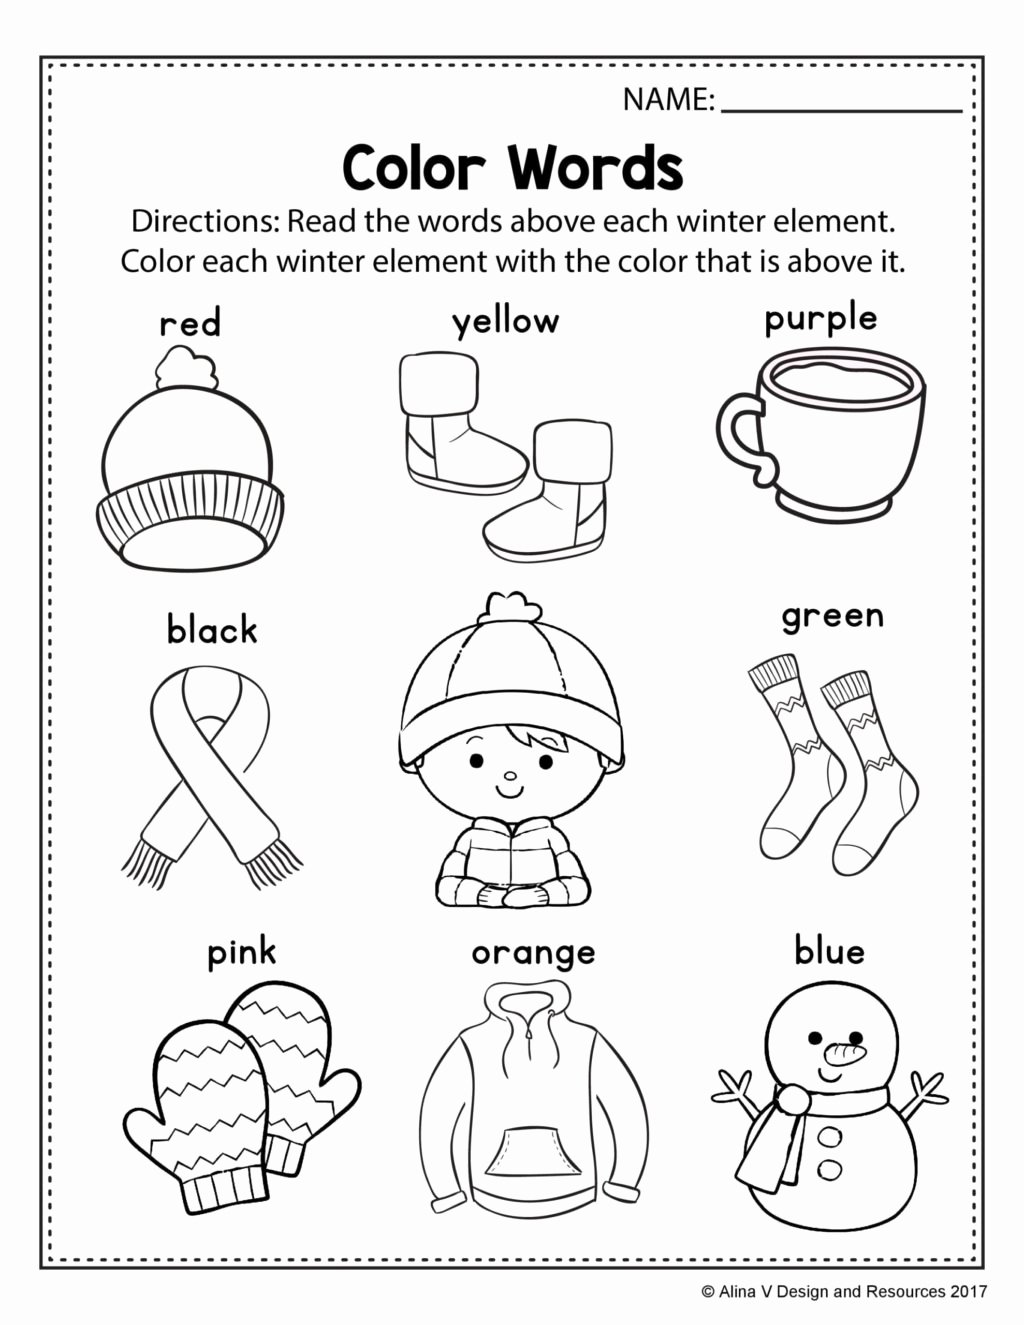 Color Blue Worksheets for Preschool Free Free Coloring Printables for Preschoolers Outstanding